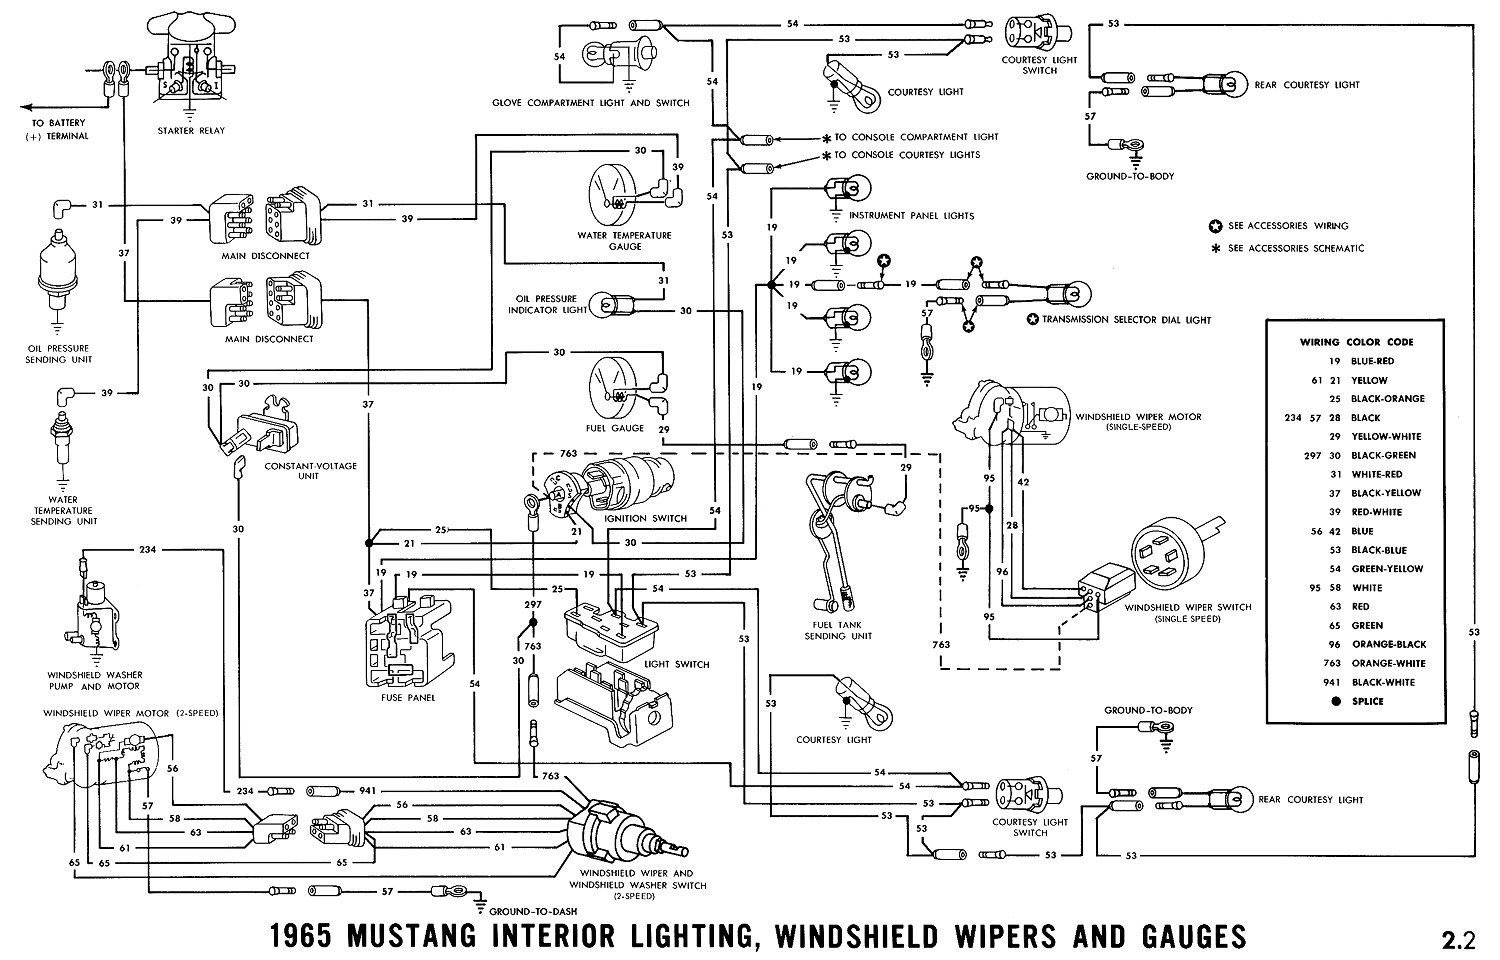 1965g 1965 mustang wiring diagrams average joe restoration 1965 mustang under dash wiring diagram at love-stories.co